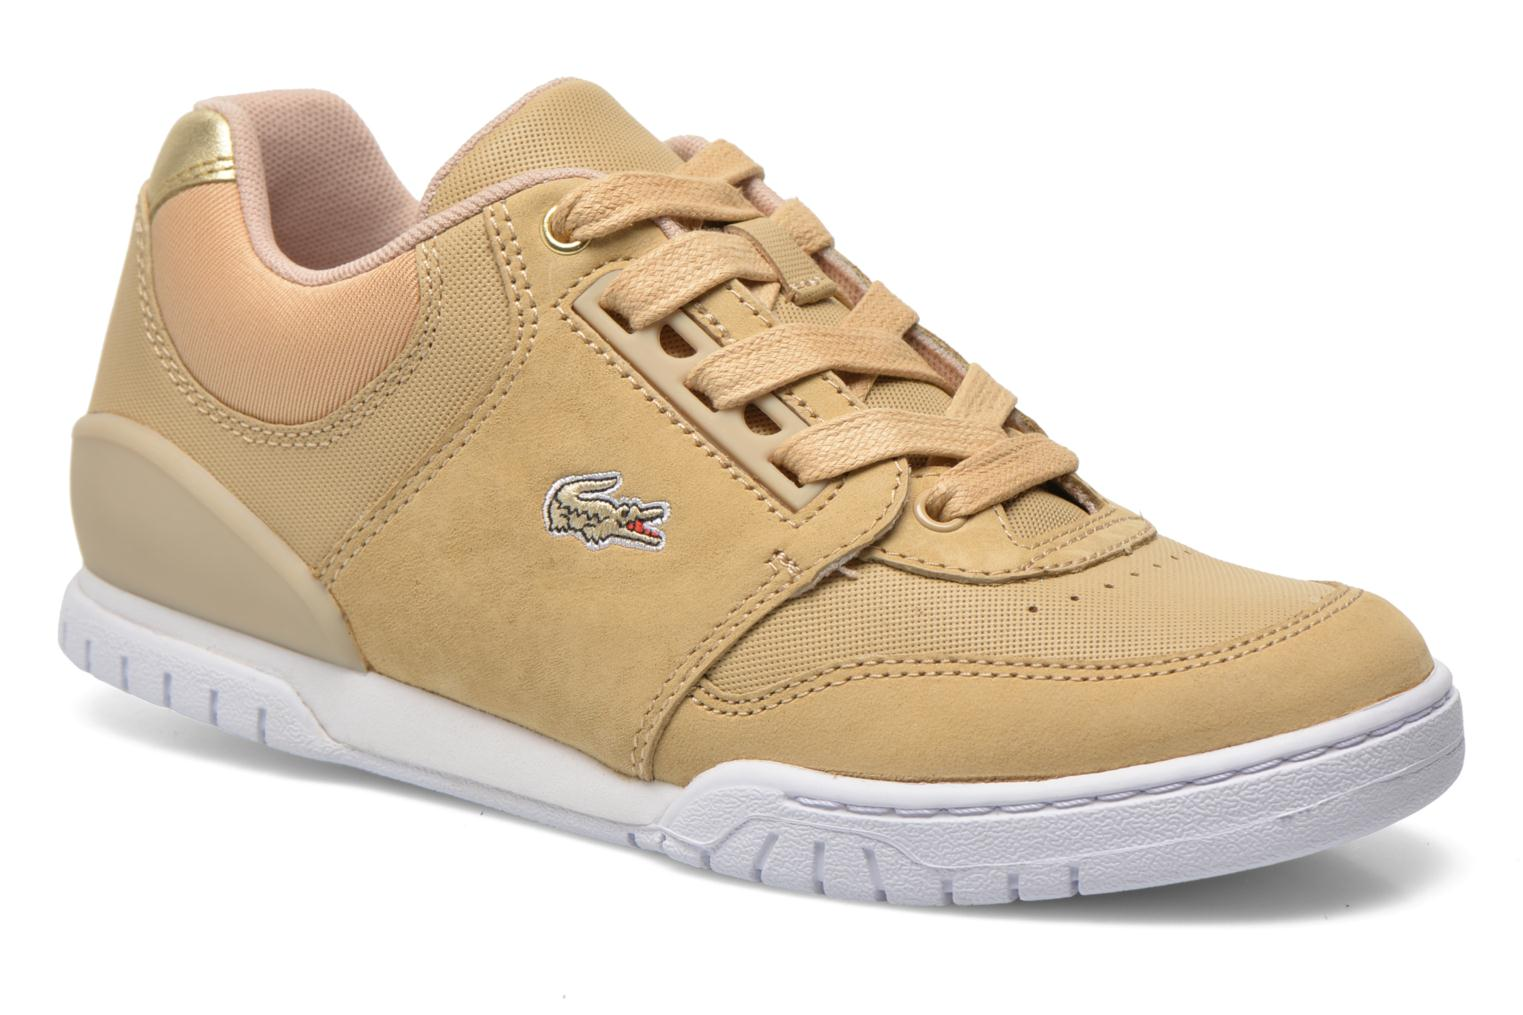 Lacoste Indiana 116 G2 Trainers Color: Pink